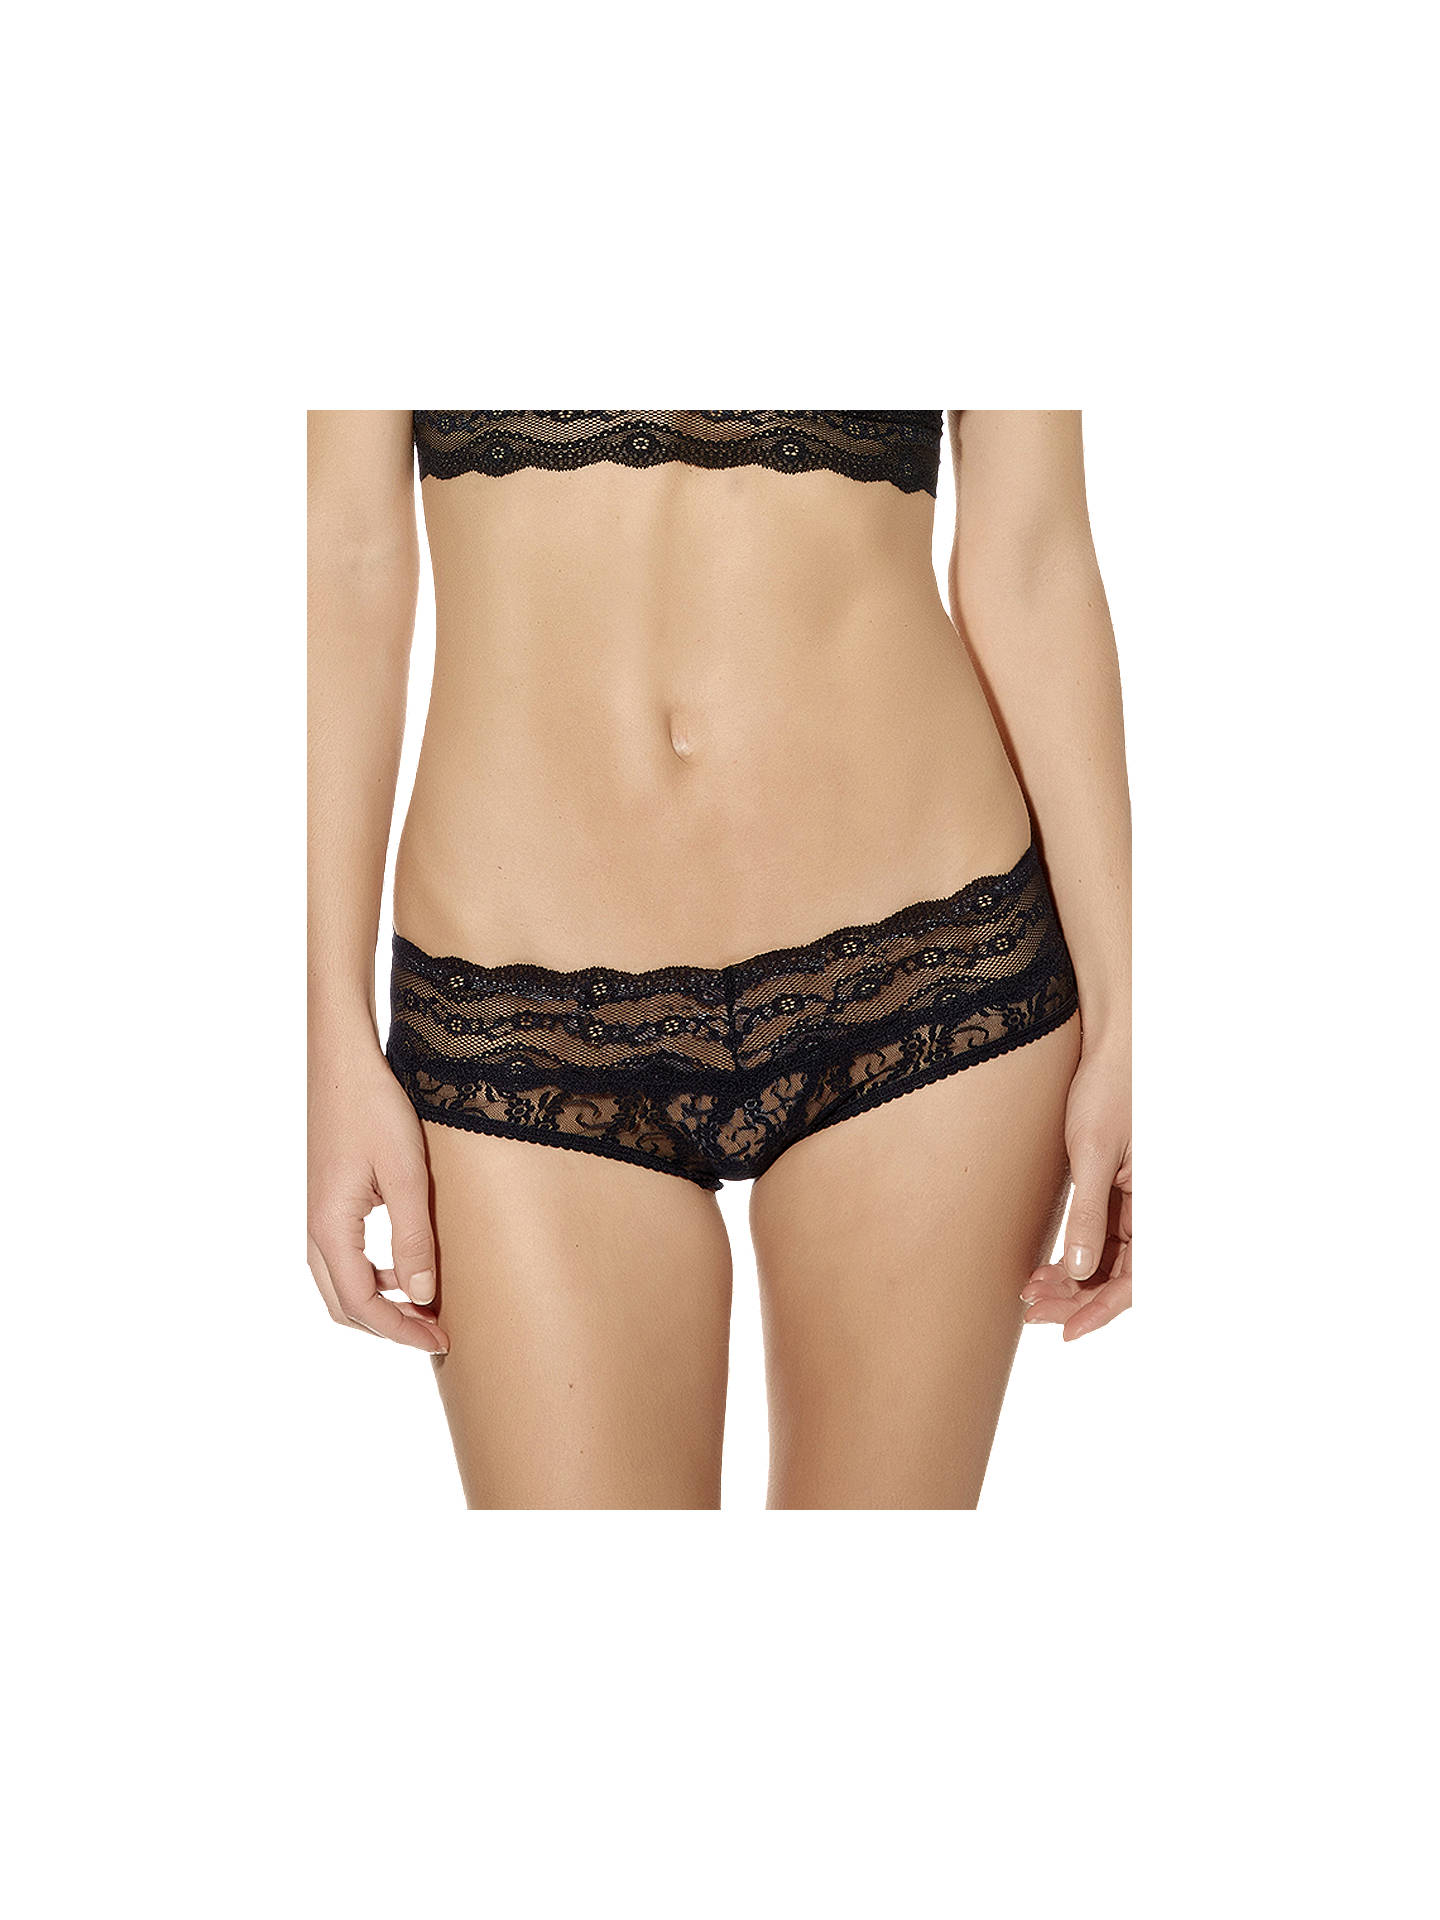 Buyb.tempt'd Lace Kiss Hipster Briefs, Night, S Online at johnlewis.com